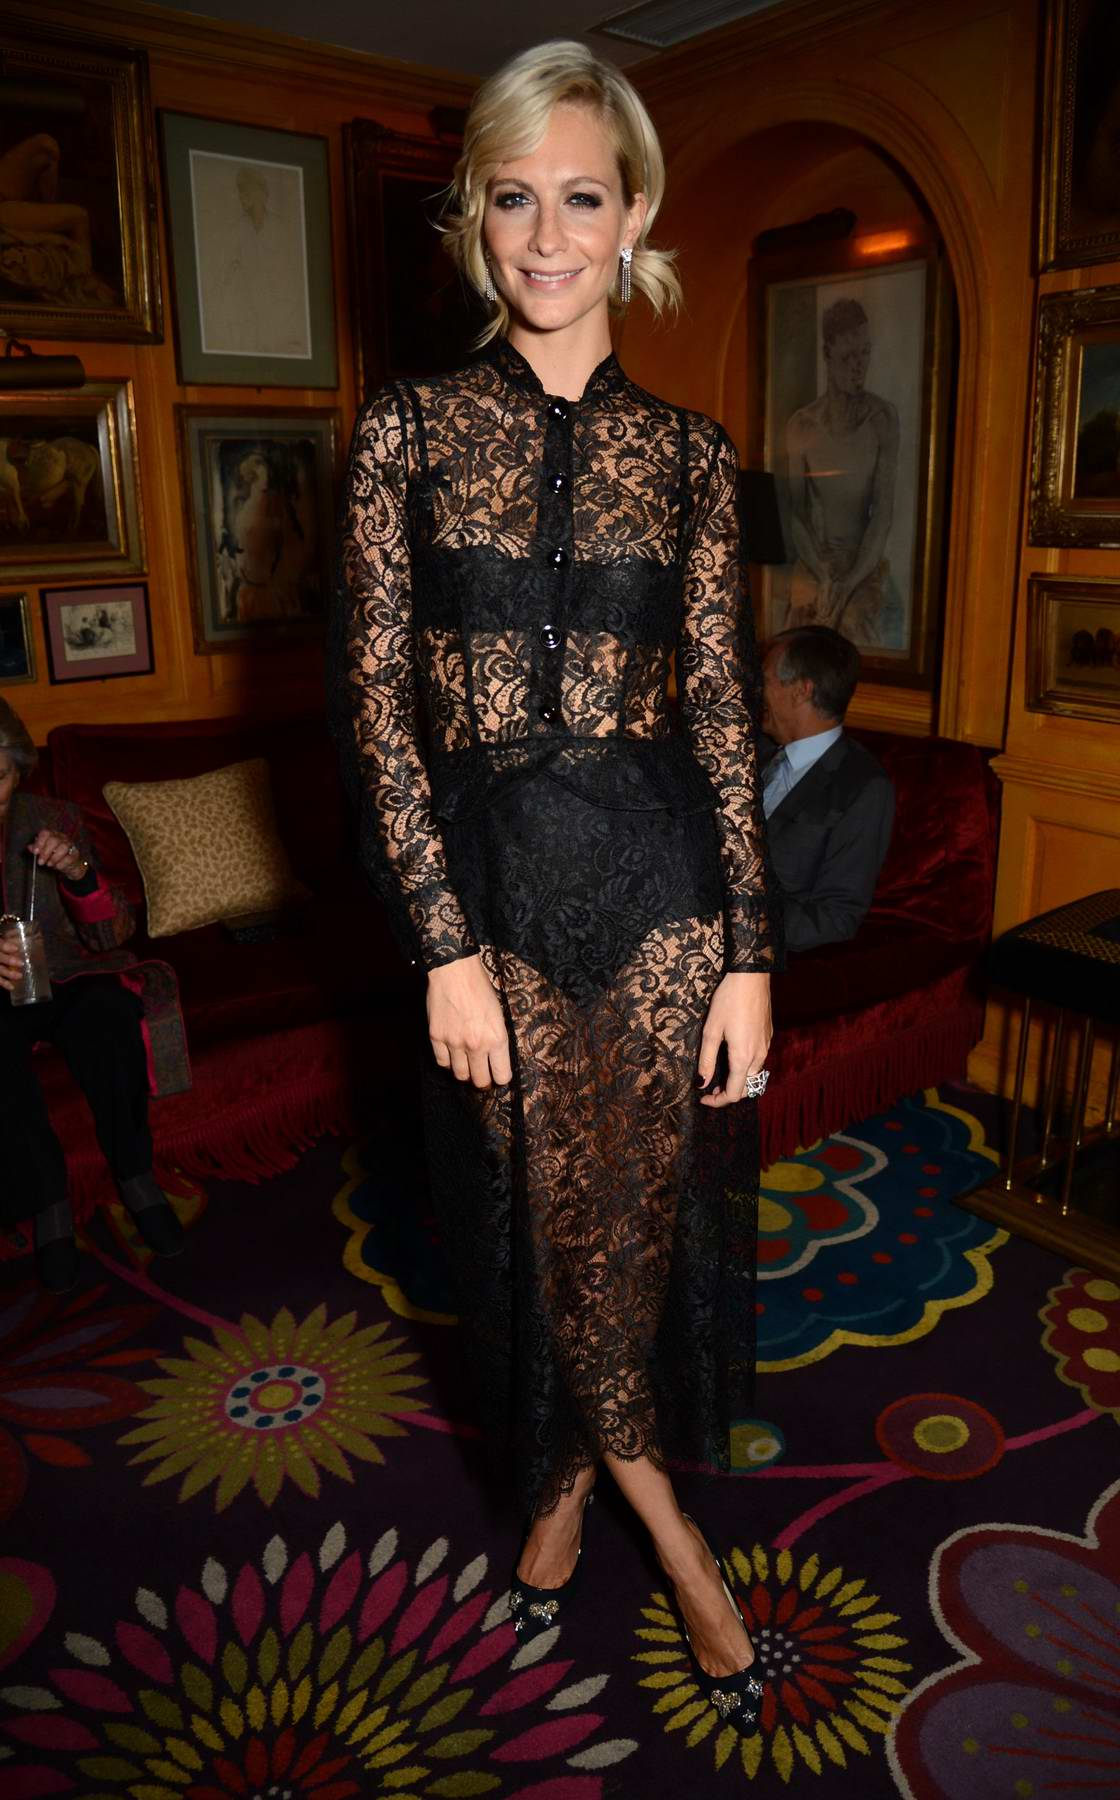 Poppy Delevingne at Conde Nast Traveler's 20th anniversary after-party at Annabel's in London